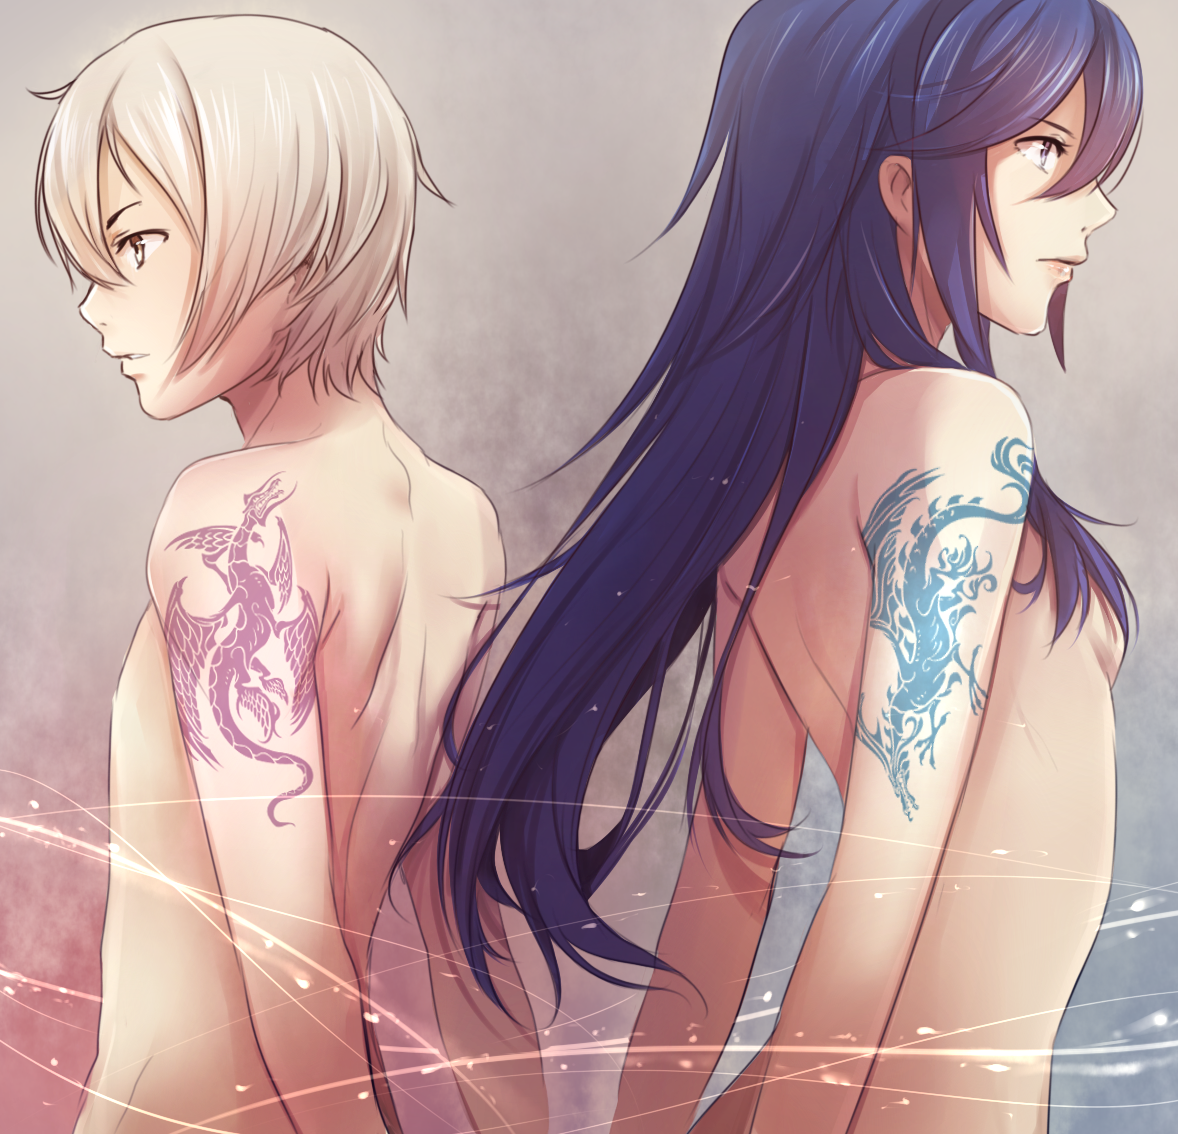 Opinion already Nude fire emblem characters